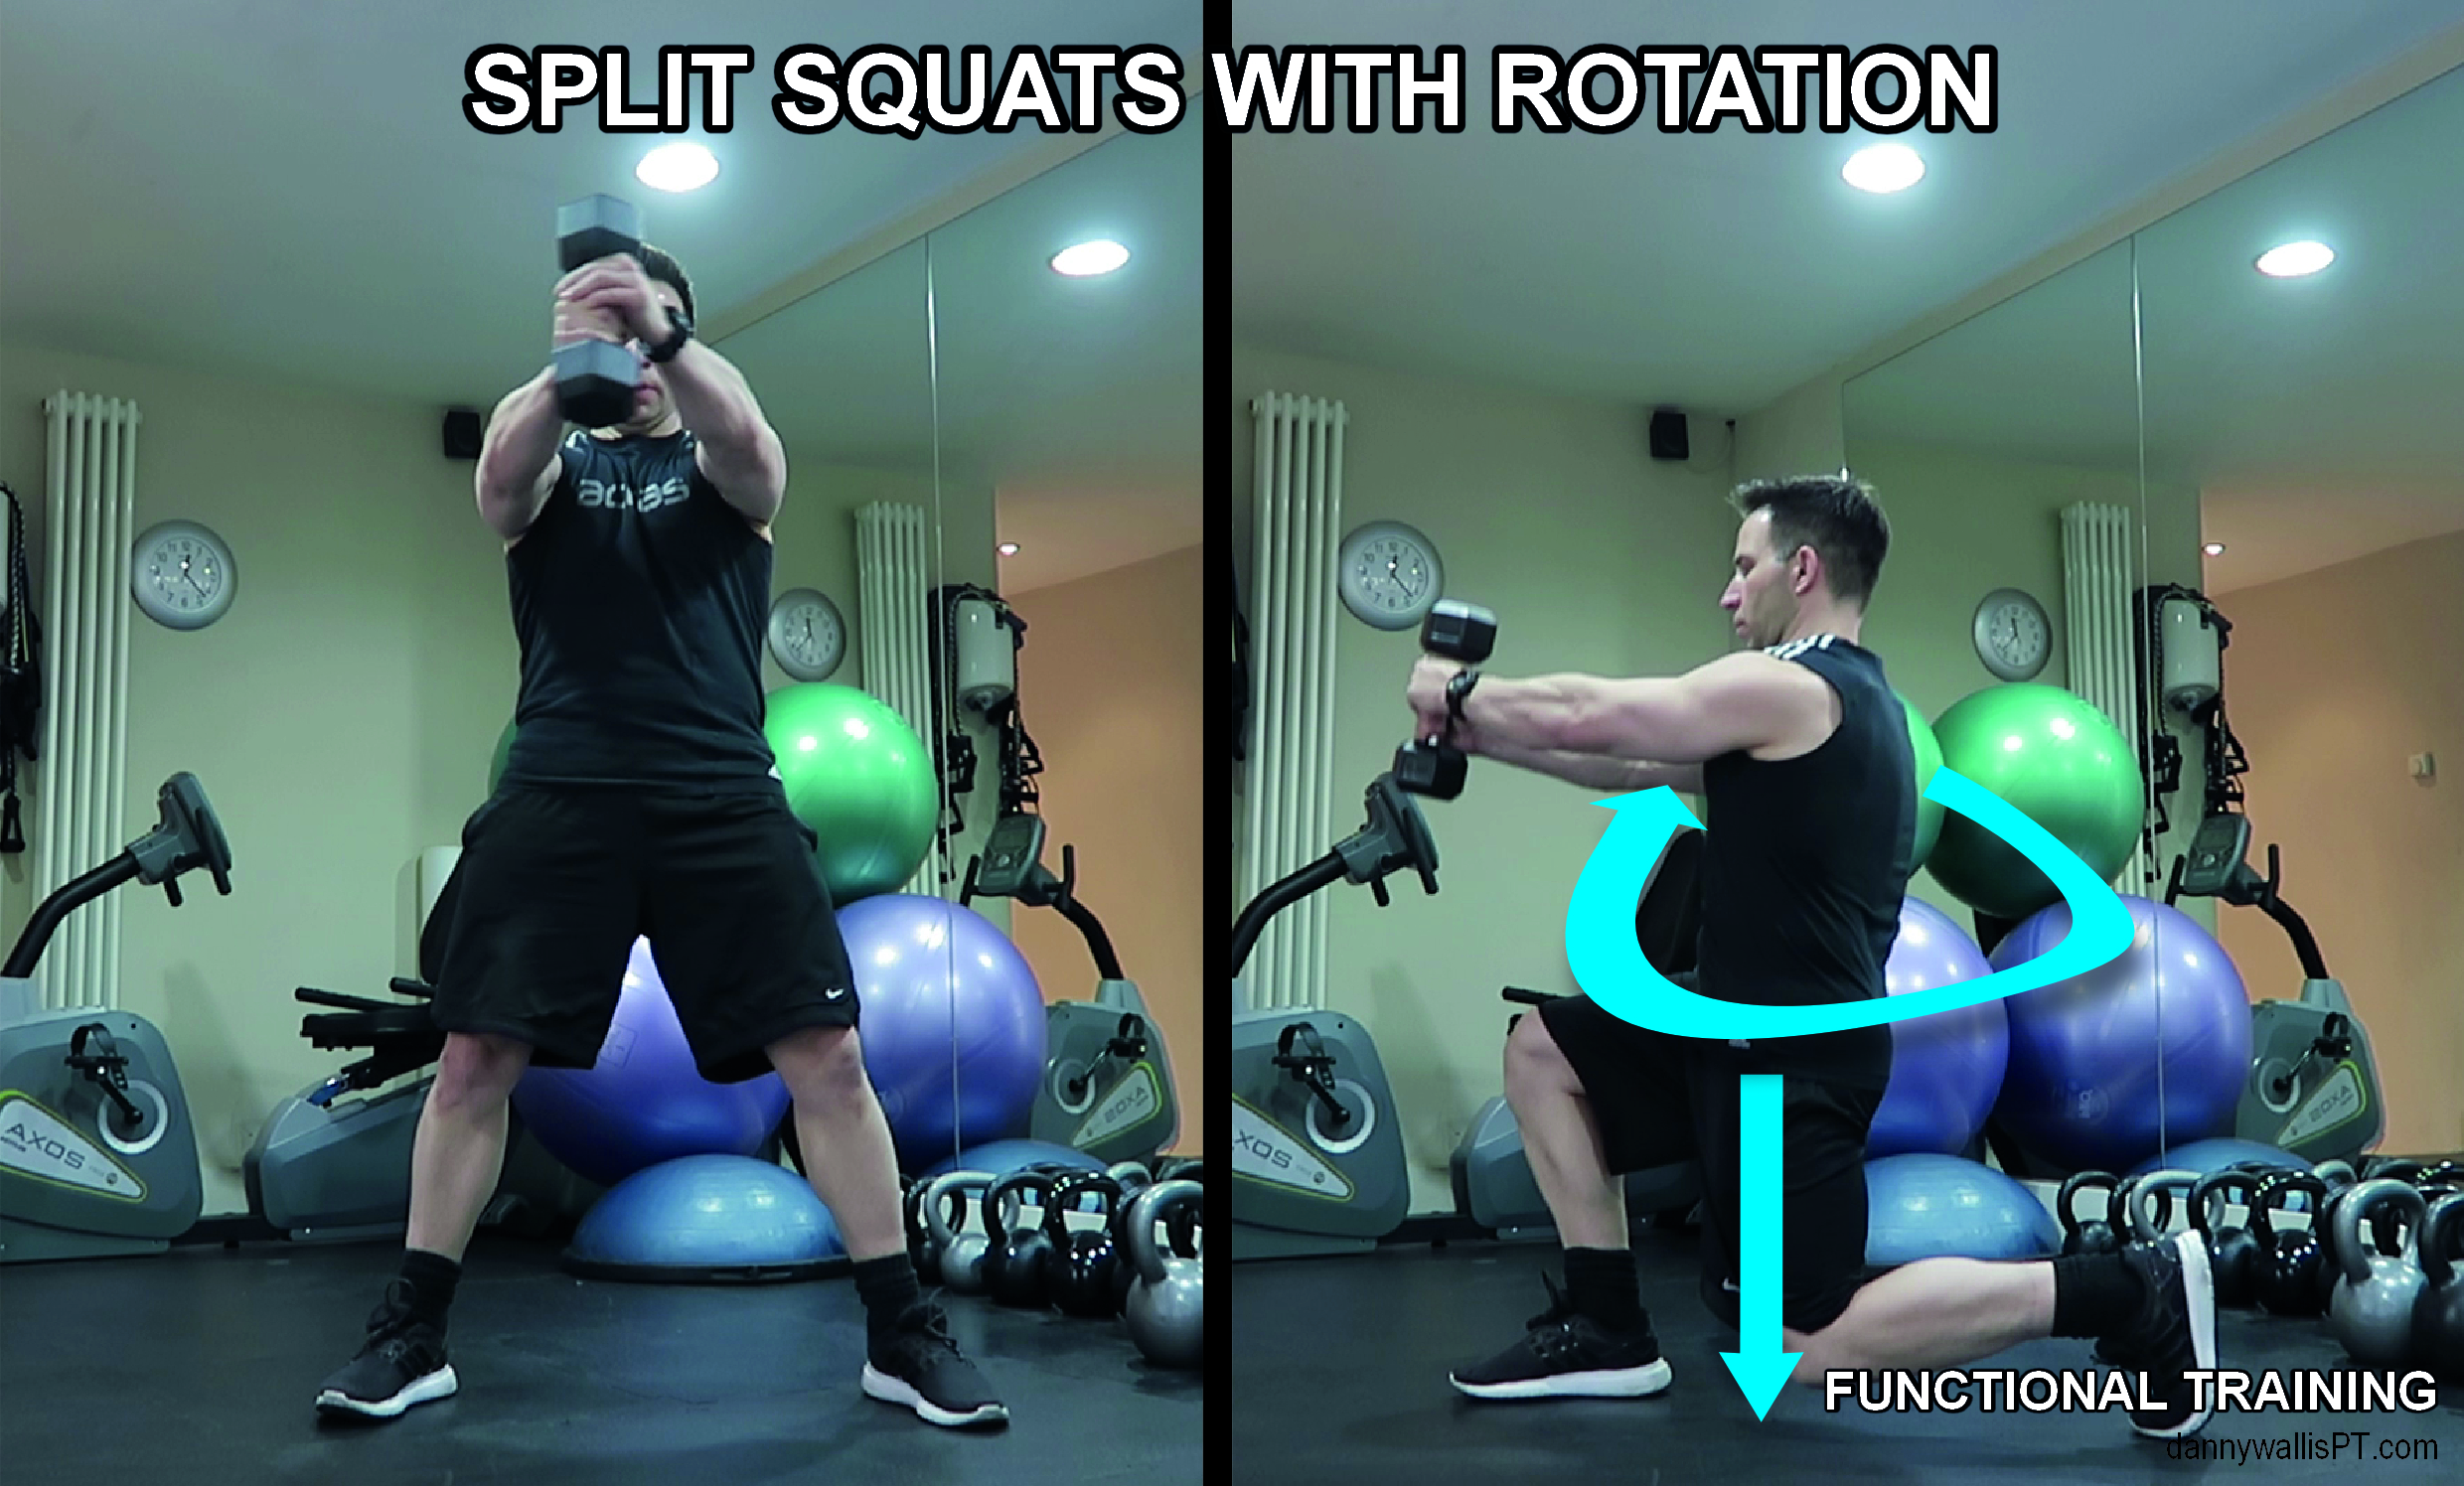 split squat with rotation: Functional training Blog Post